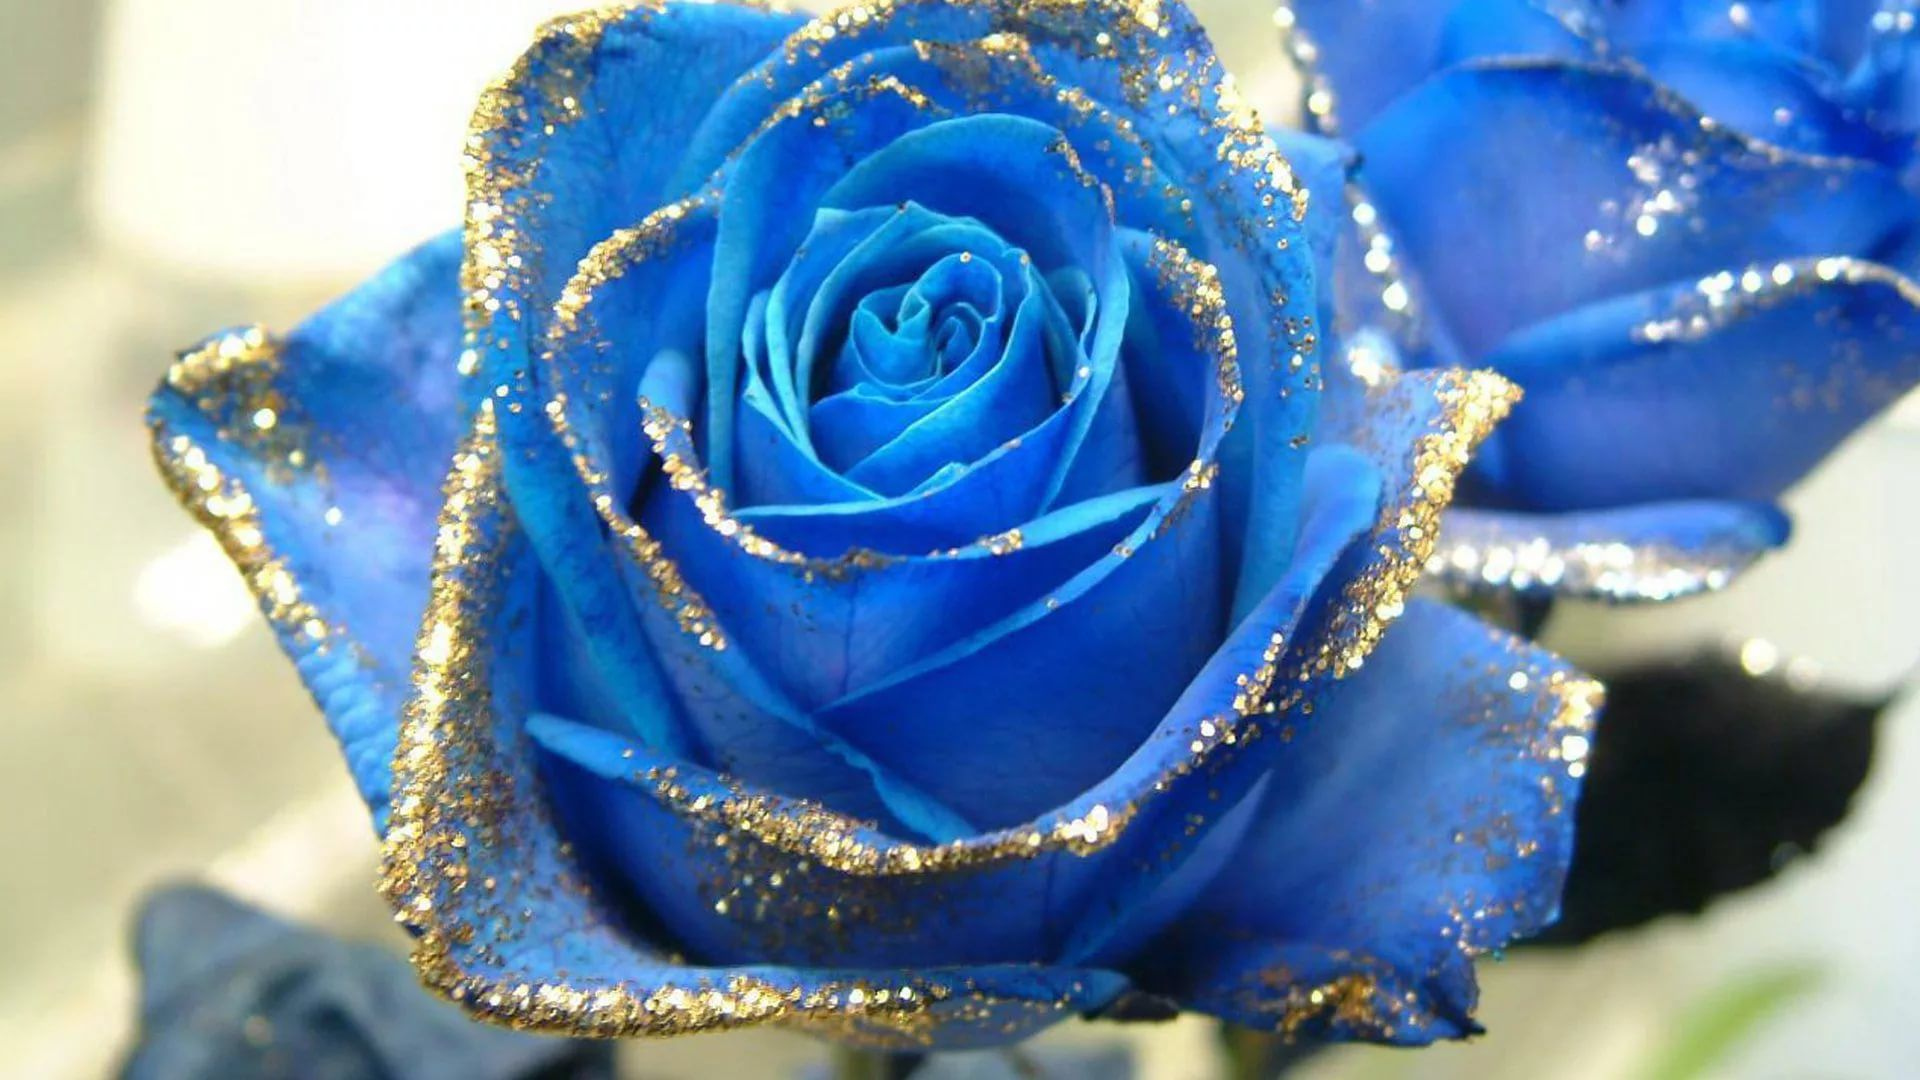 Blue Rose Wallpaper and Background